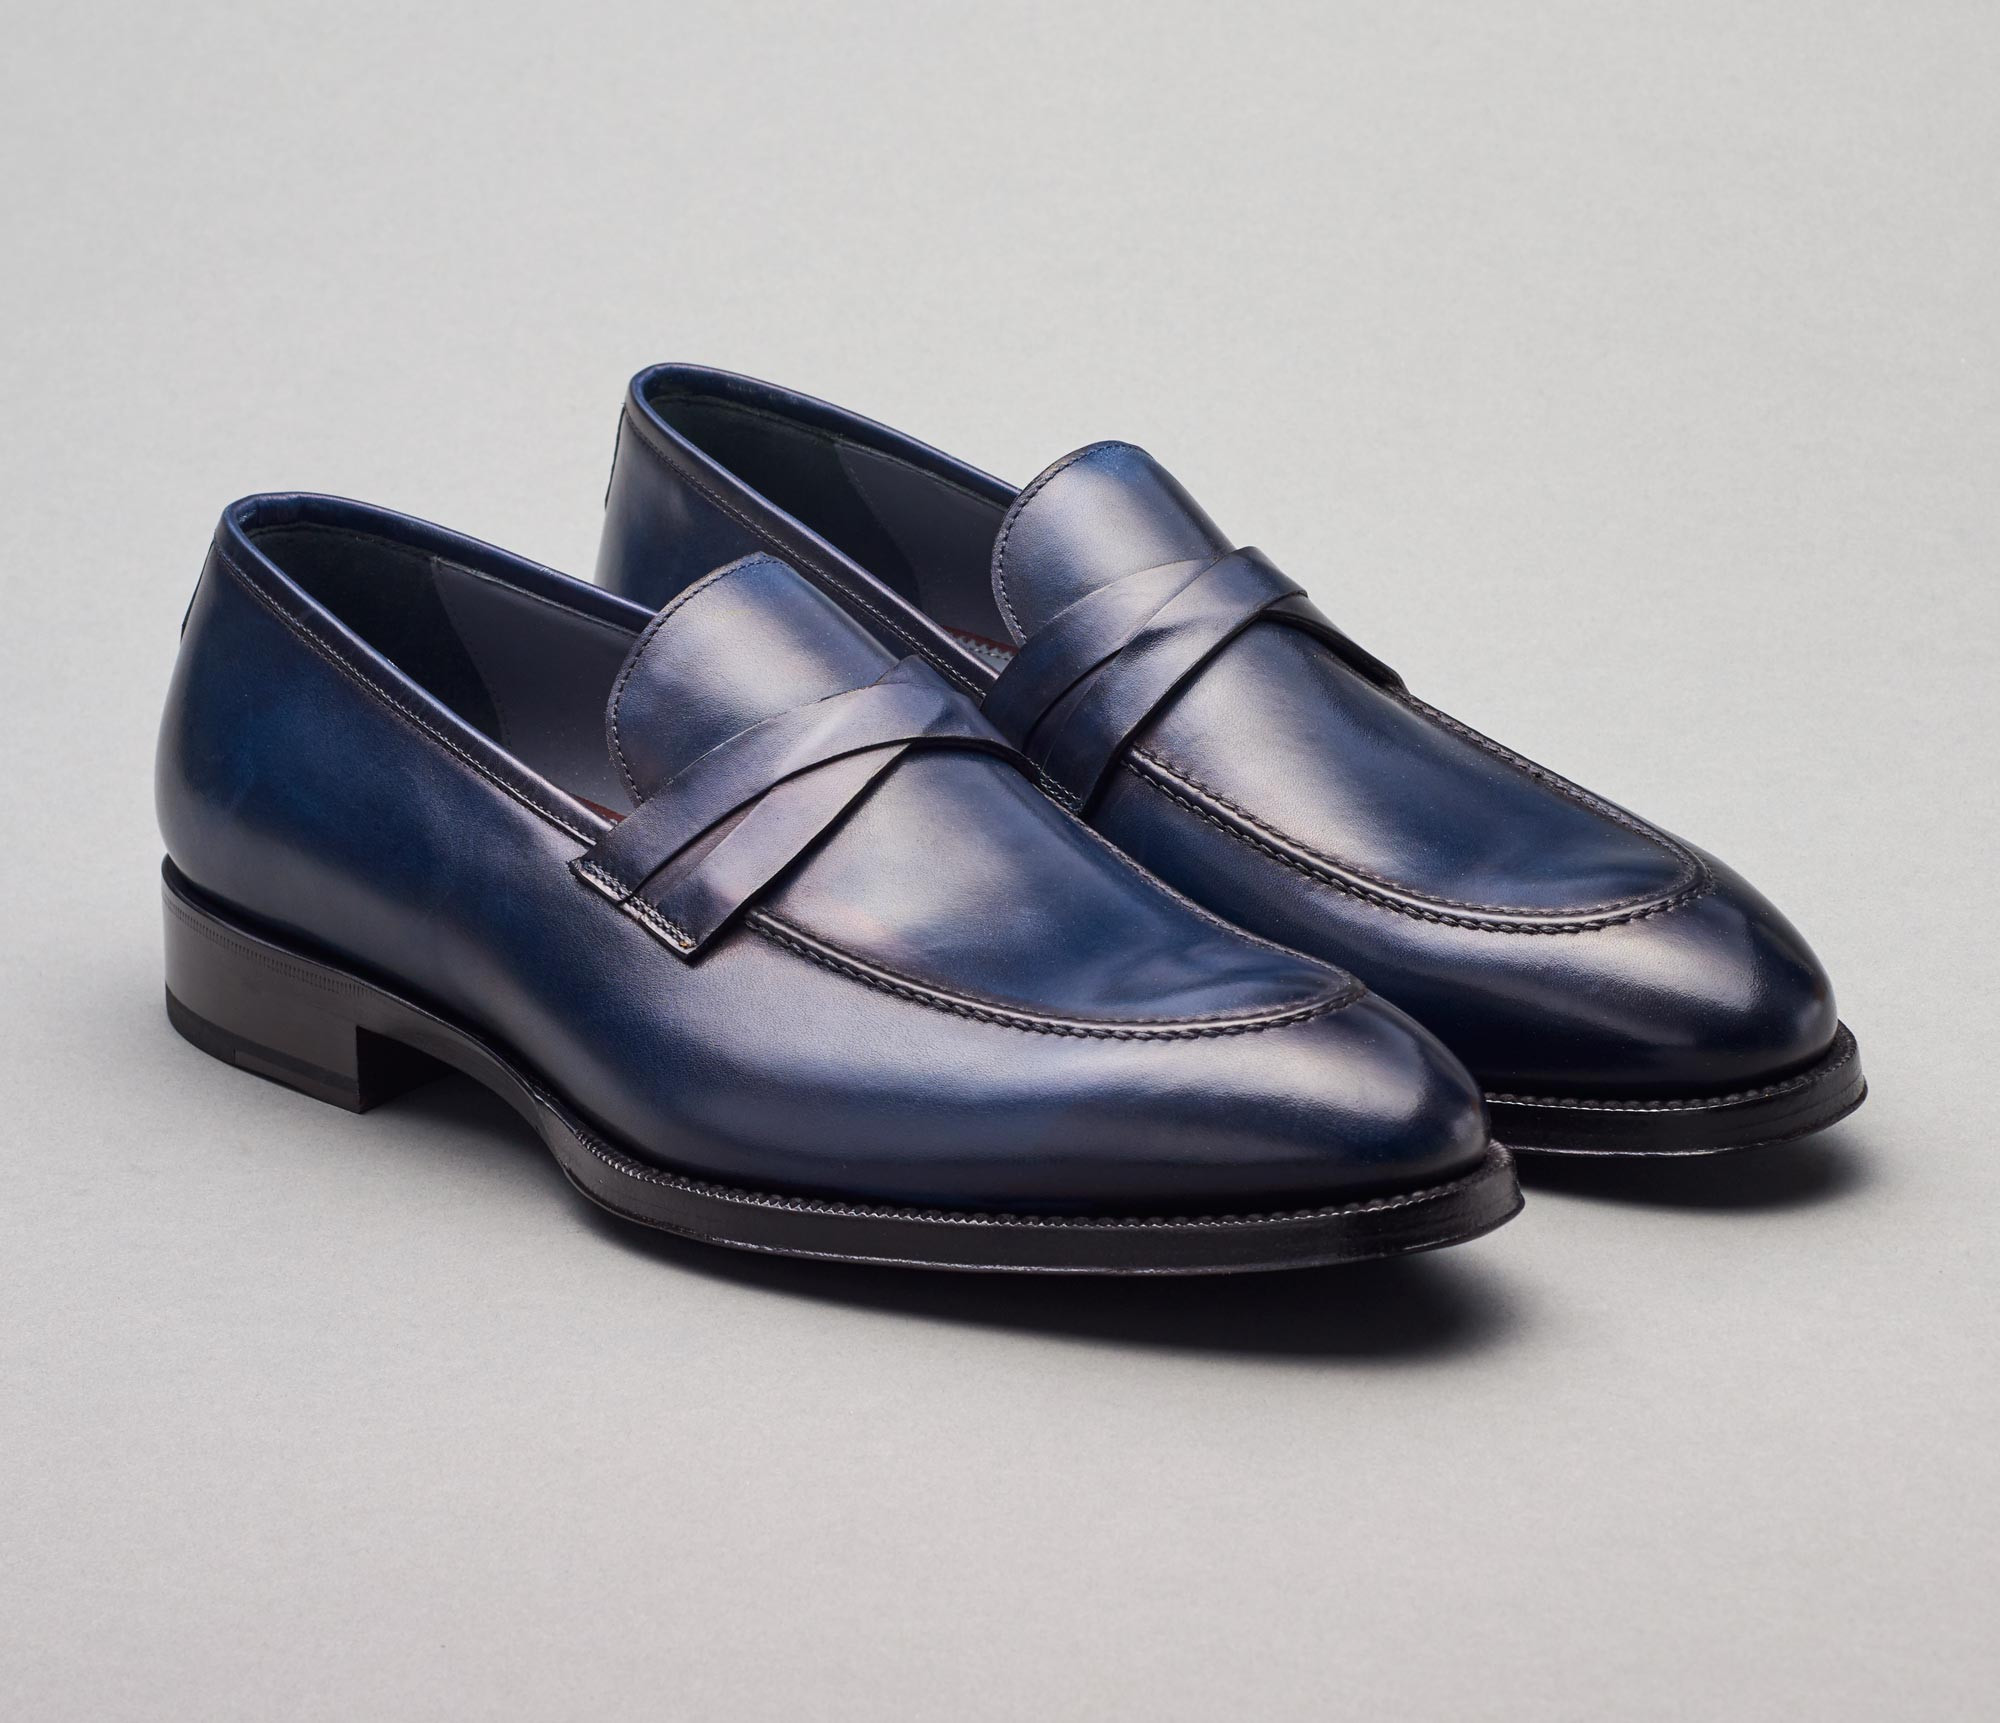 Siena Leather Loafer in Navy